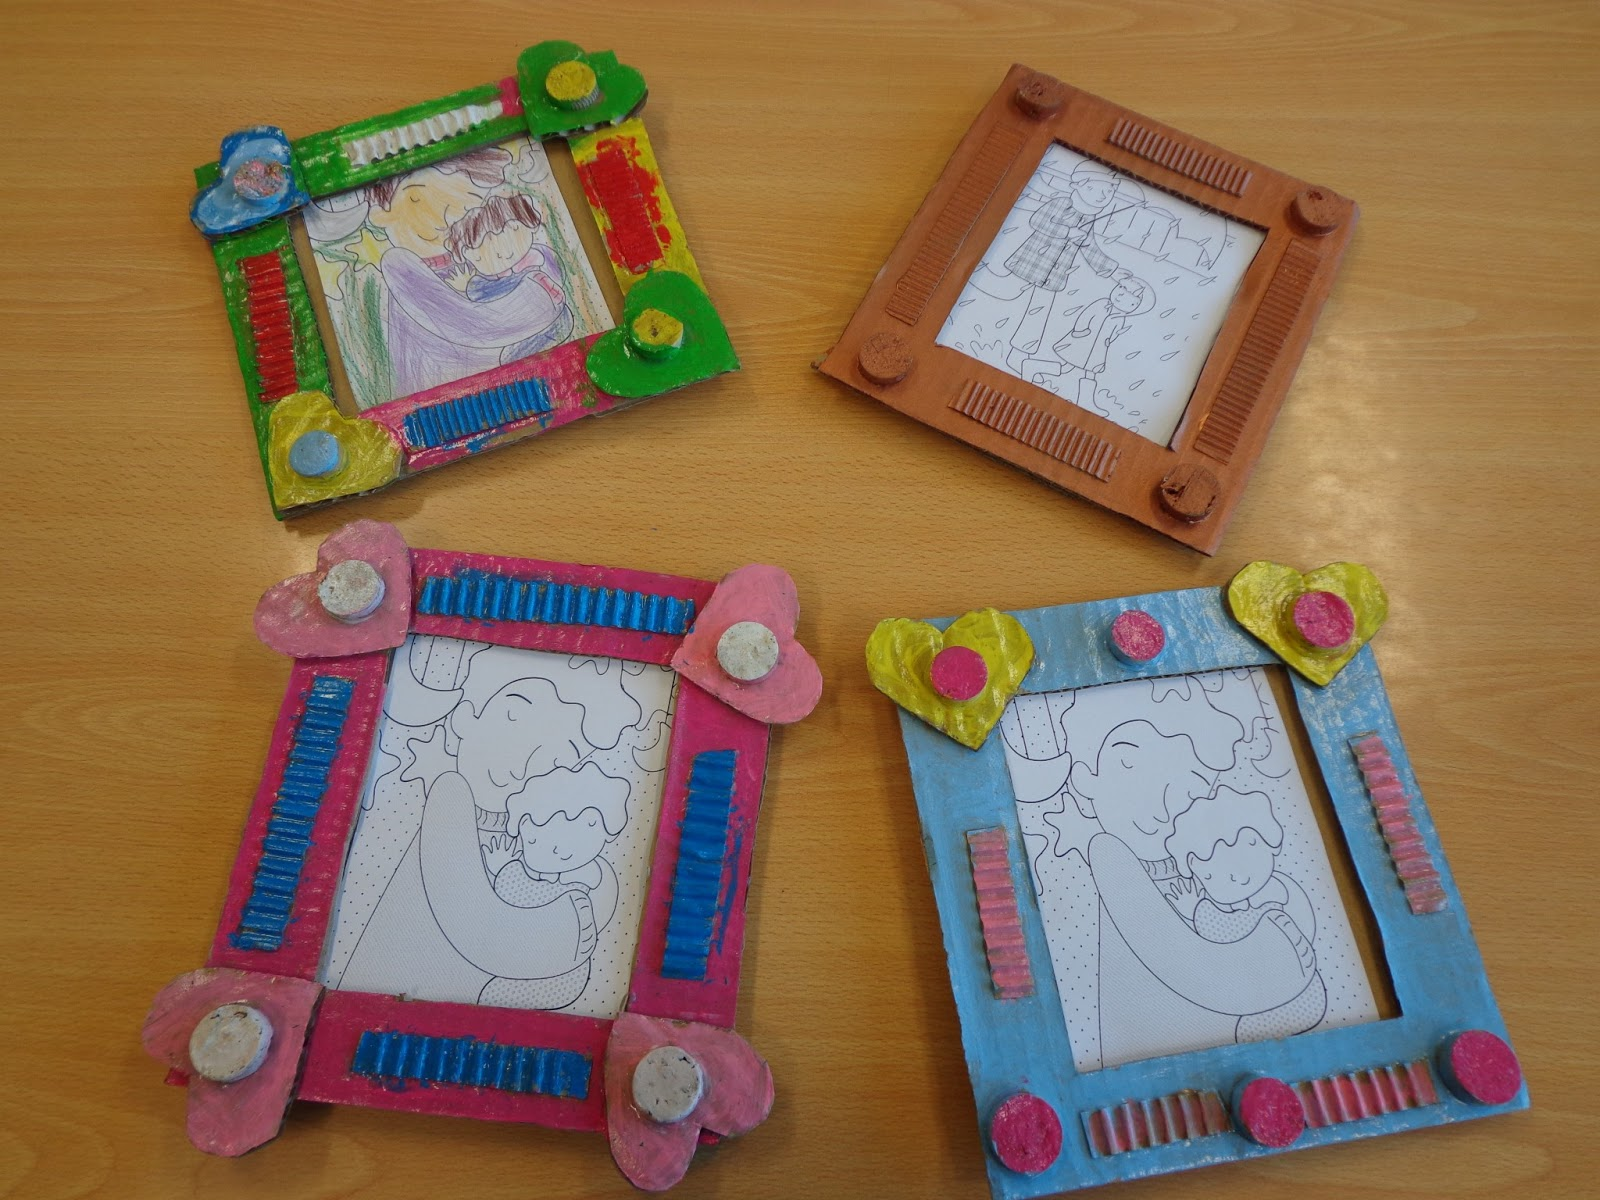 Reuse Crafts Cardboard Picture Frame Craft